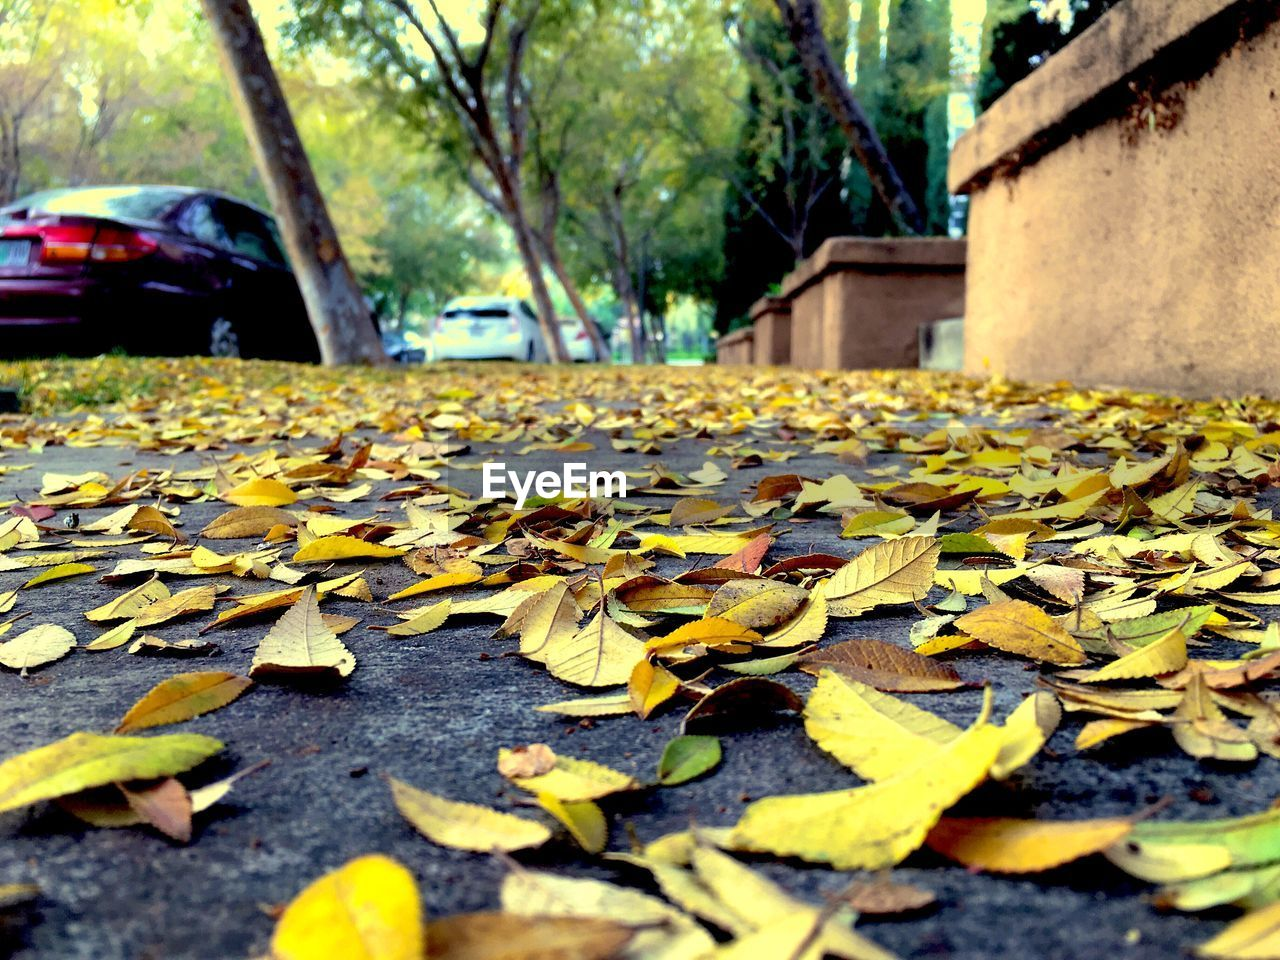 SURFACE LEVEL OF LEAVES ON ROAD